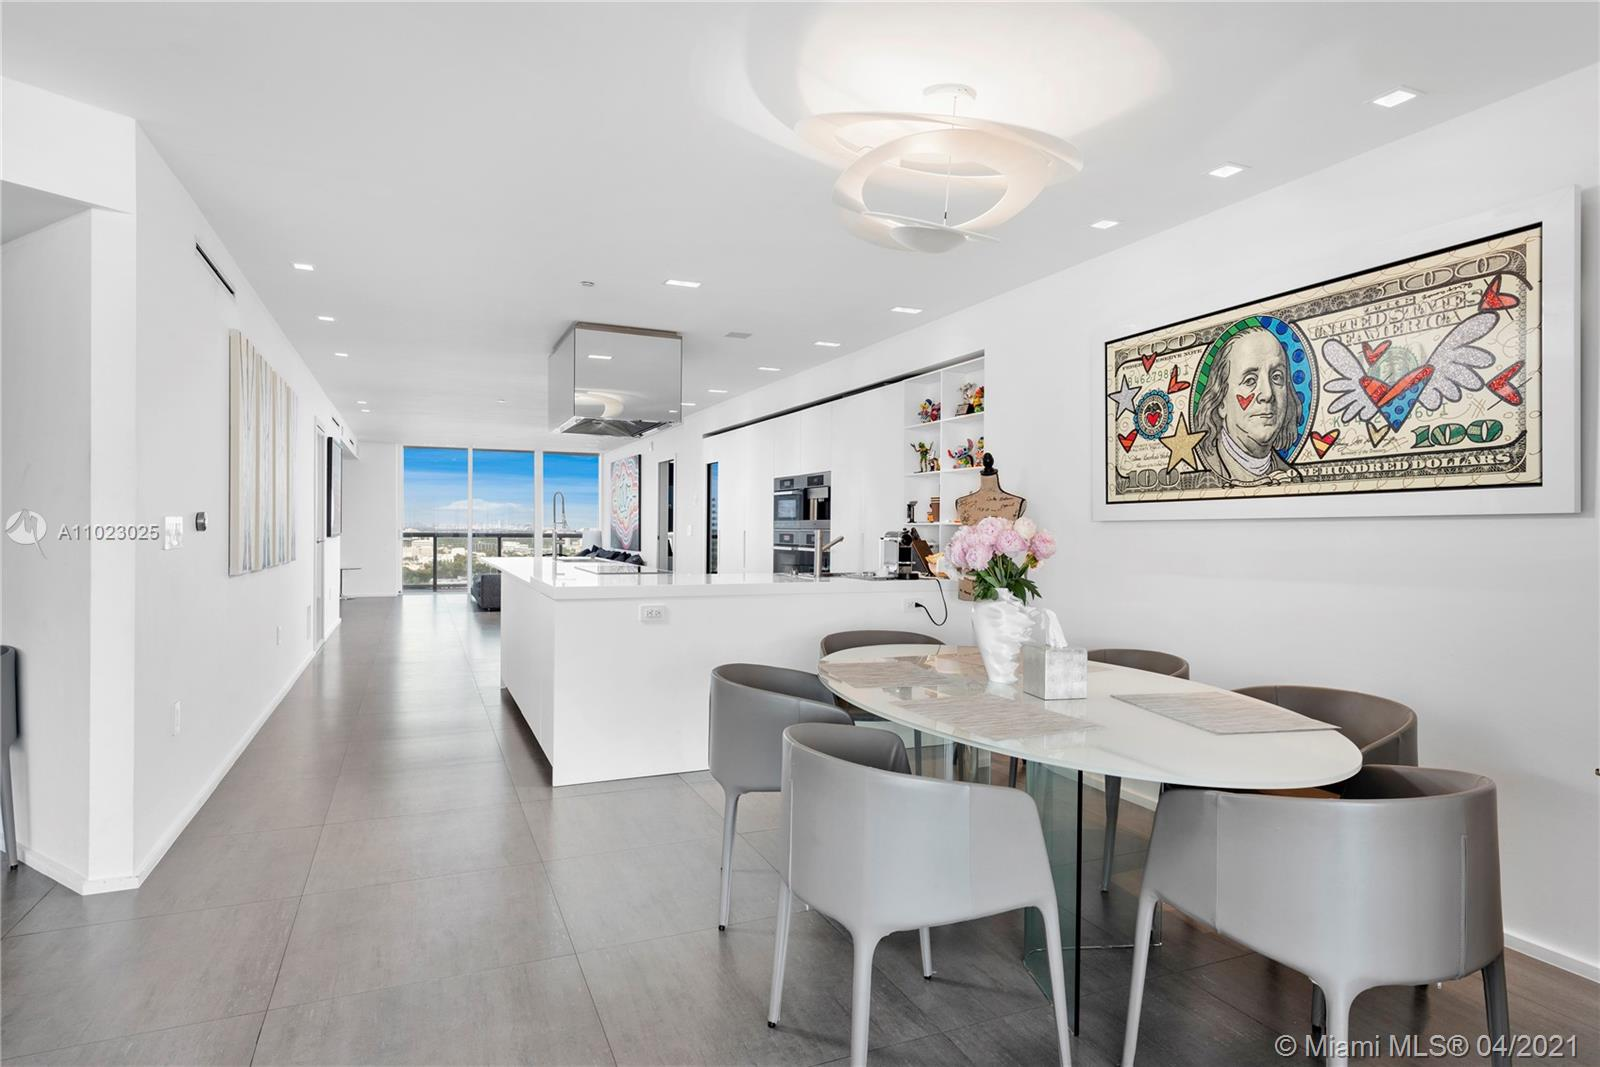 Introducing fabulous residence at the Icon South Beach. A true must see. Fully renovated and tastefully decorated combined unit(2403-2404)with spacious 4 Beds 4,5 Baths. This rare combination offers the largest floor plan in the building. Flow-through design with modern sleek open kitchen, dining area and two living areas, one with views of gorgeous Fisher Island, Brickell skyline views and the other one with urban views of Miami Beach. 2 large&perfect for entertaining balconies. Renovated building, services include complimentary valet for all guests & residents, lobby attendant, full service gym & spa with personal trainers on site, lap pool, main pool, restaurant, massage room & more. South of 5th neighborhood giving residents direct access tothe legendary restaurants in the area.